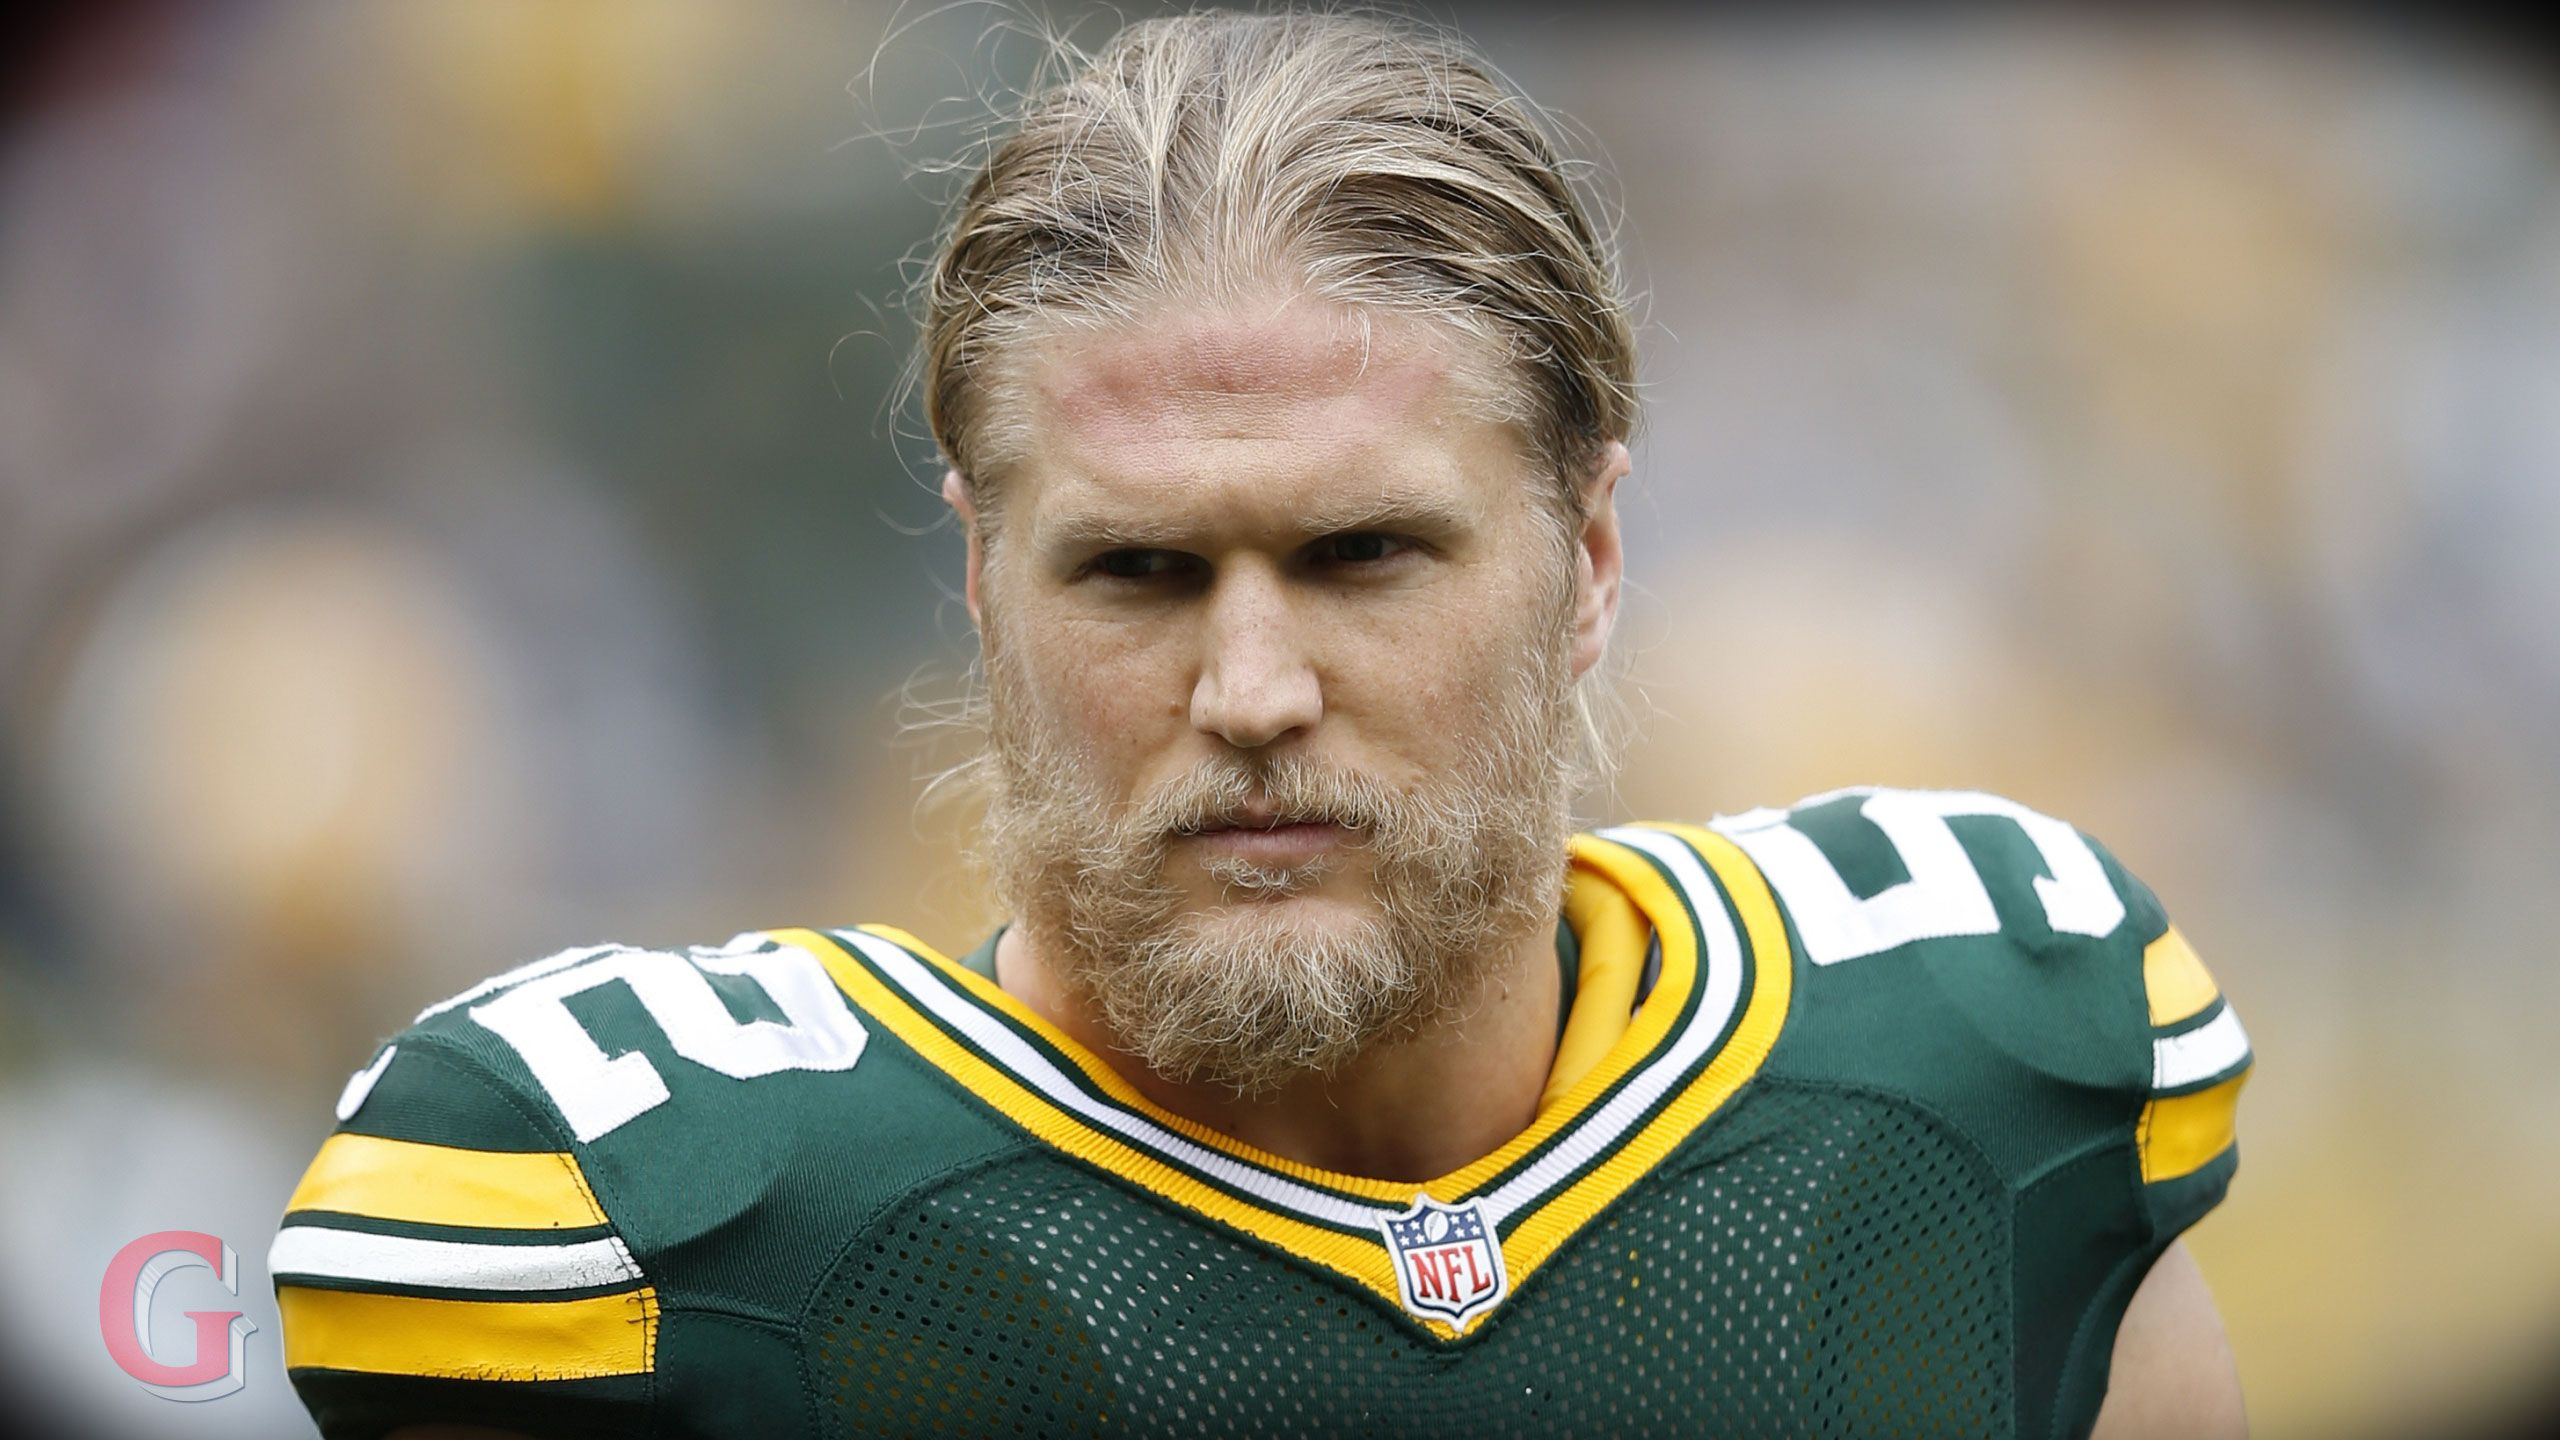 Stunning The Grantland Nfl Podcast Seahawks Clay Matthews Hairstyle Cute Clay Matthews Hairstyle Clay Matthews Matthews Packers Baby